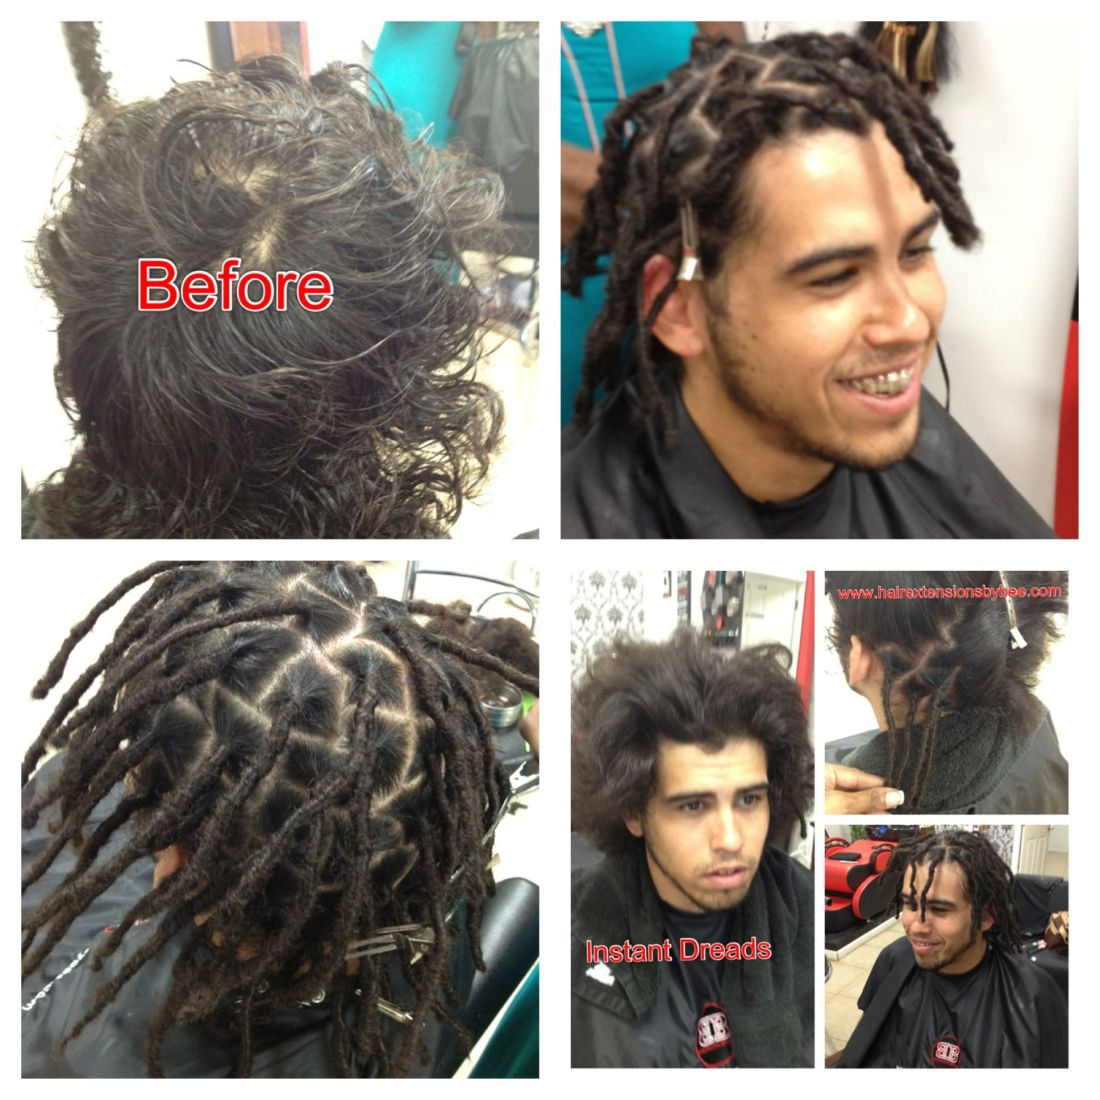 Instant dreads will work with any texture hair doesnt